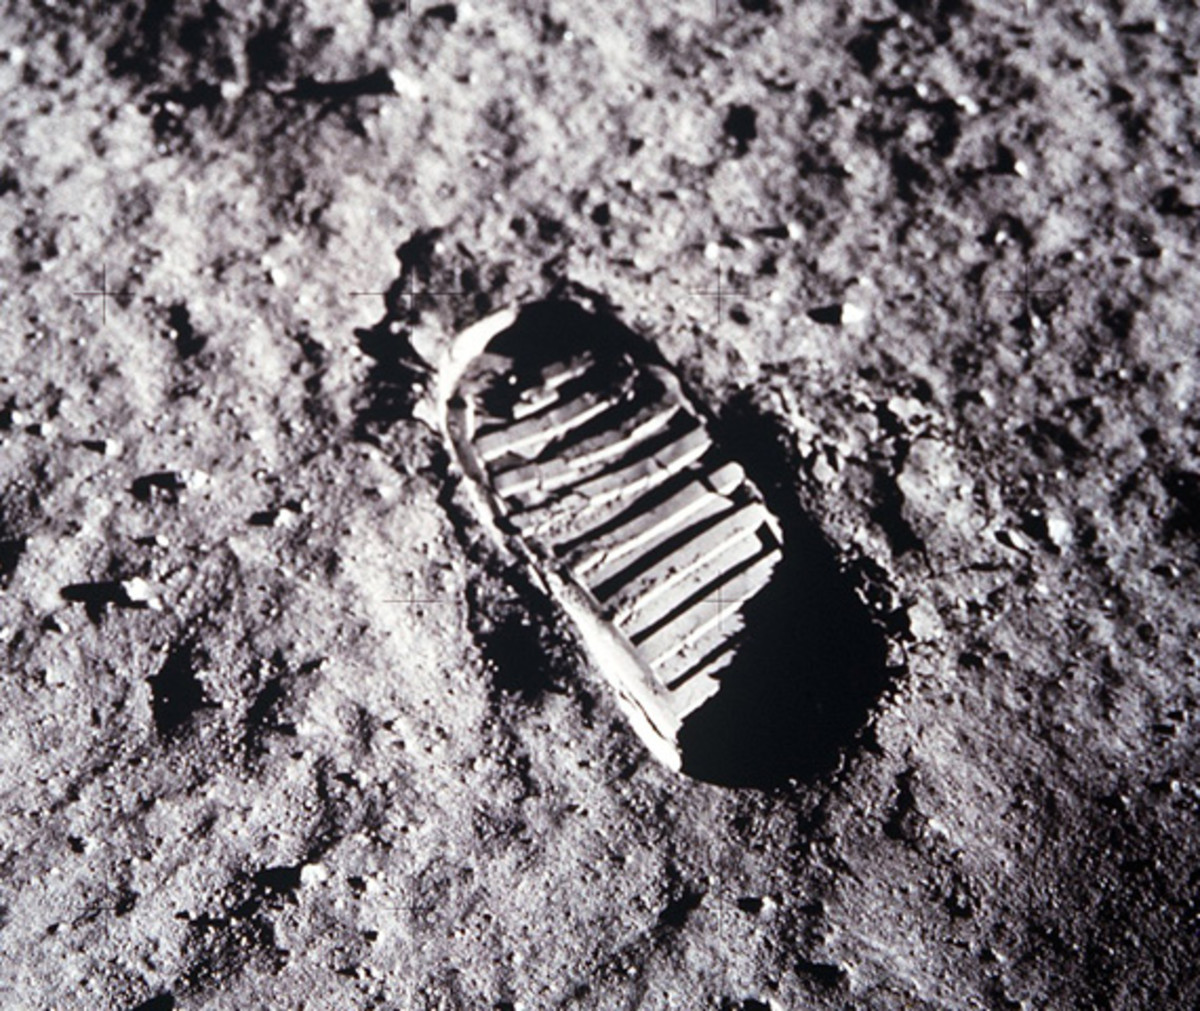 neil-armstrong-first-man-on-the-moon-apollo-11-08